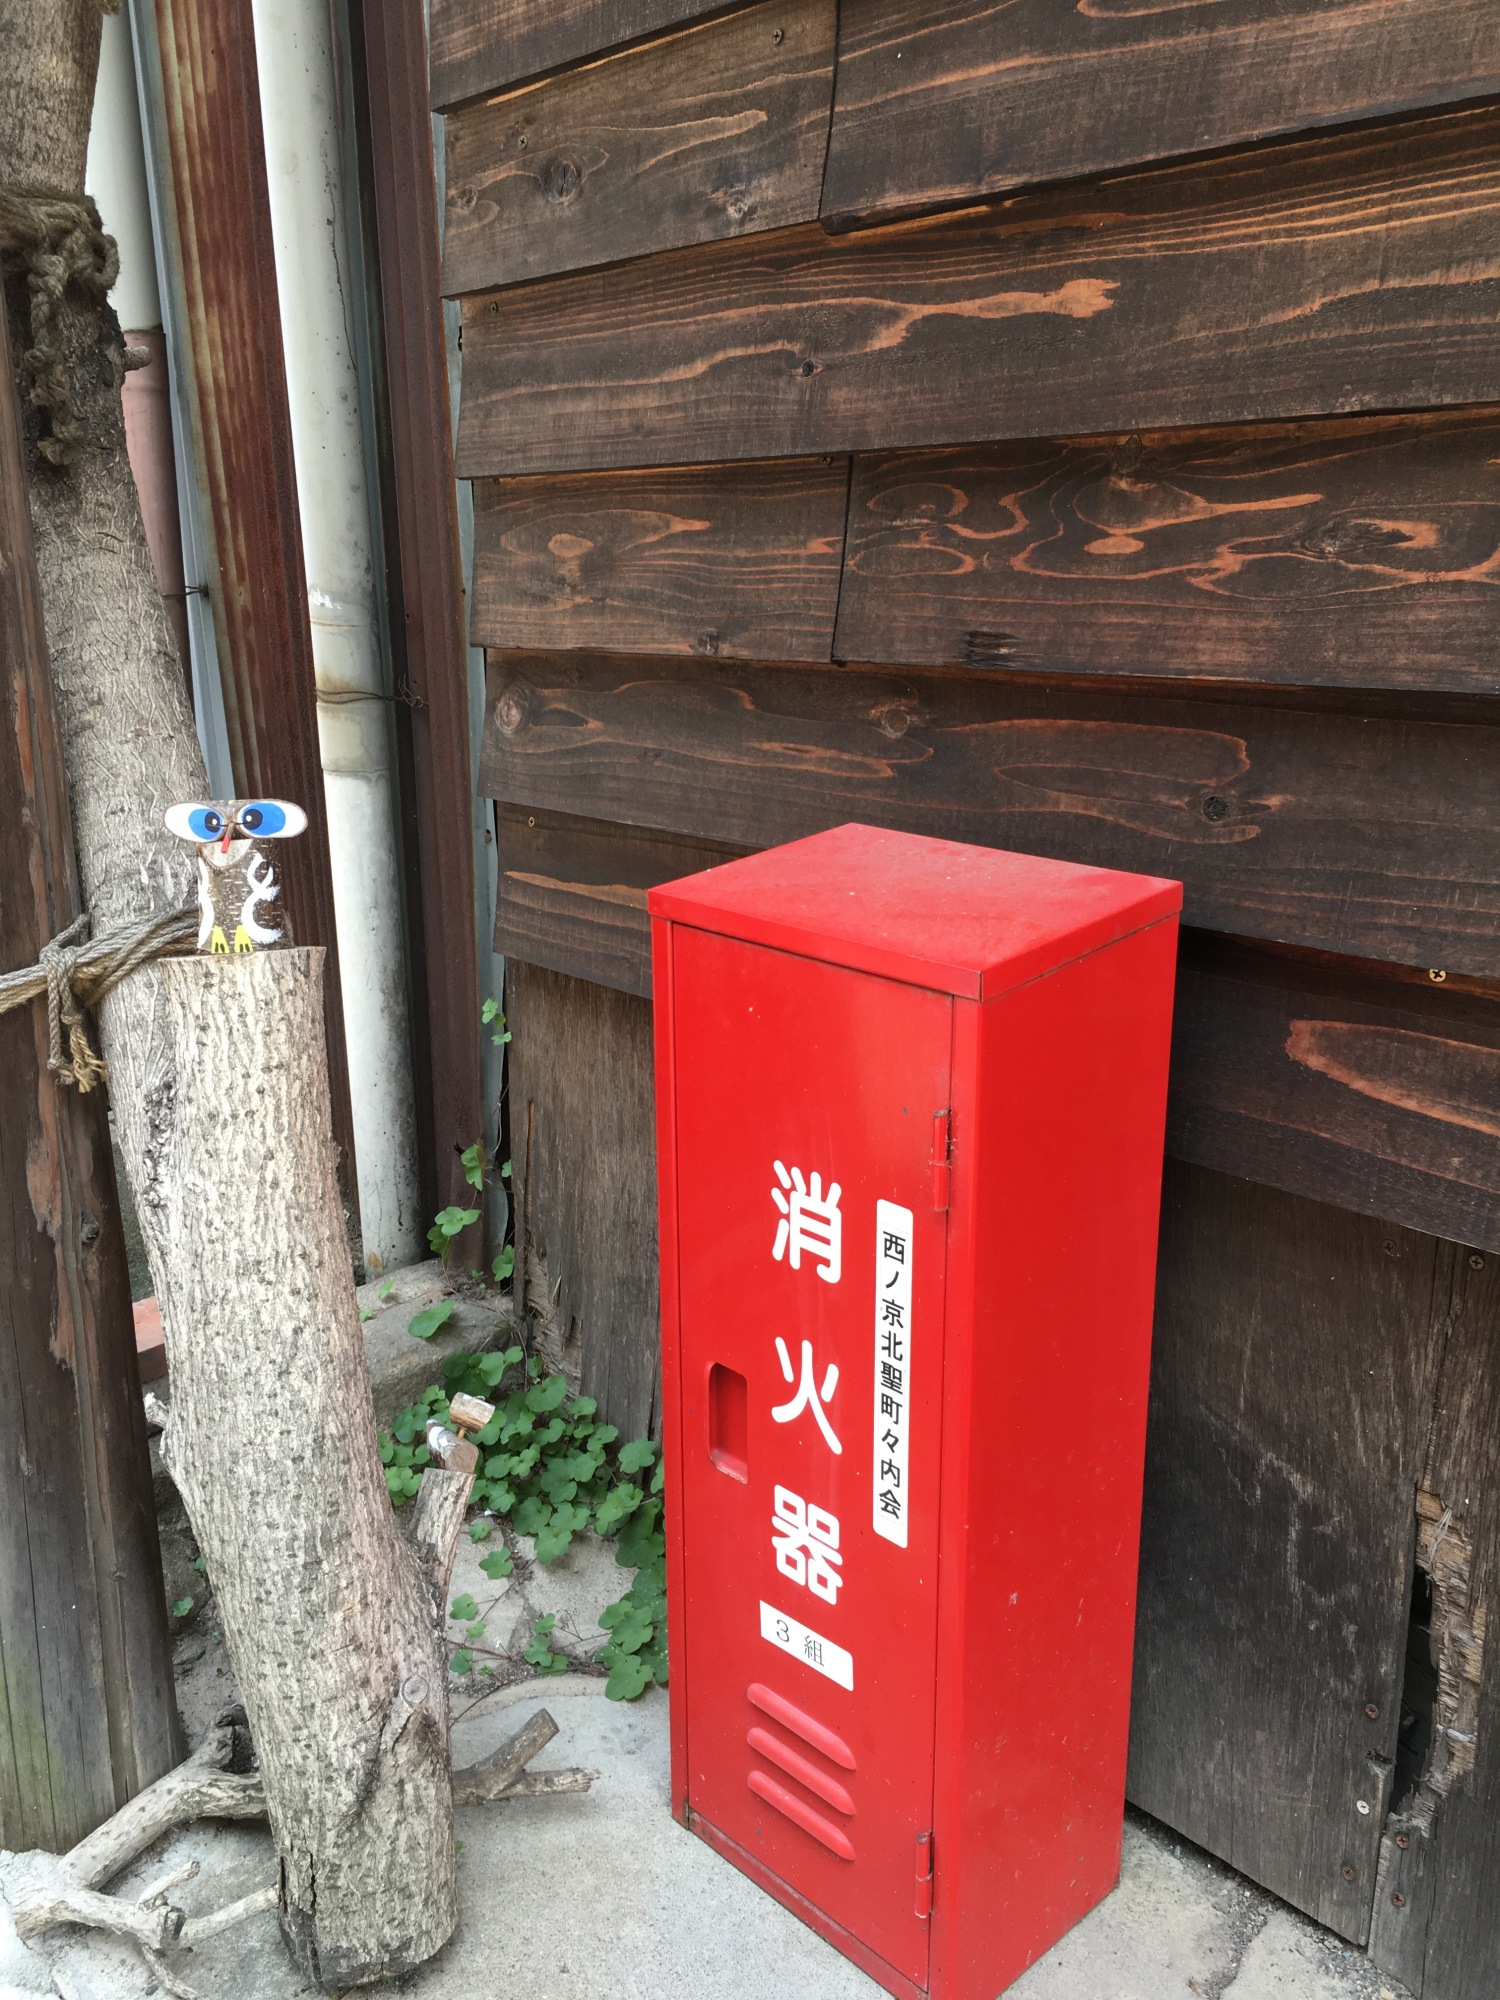 These boxes are commonly seen in the streets of Kyoto. They contain fire extinguishers.